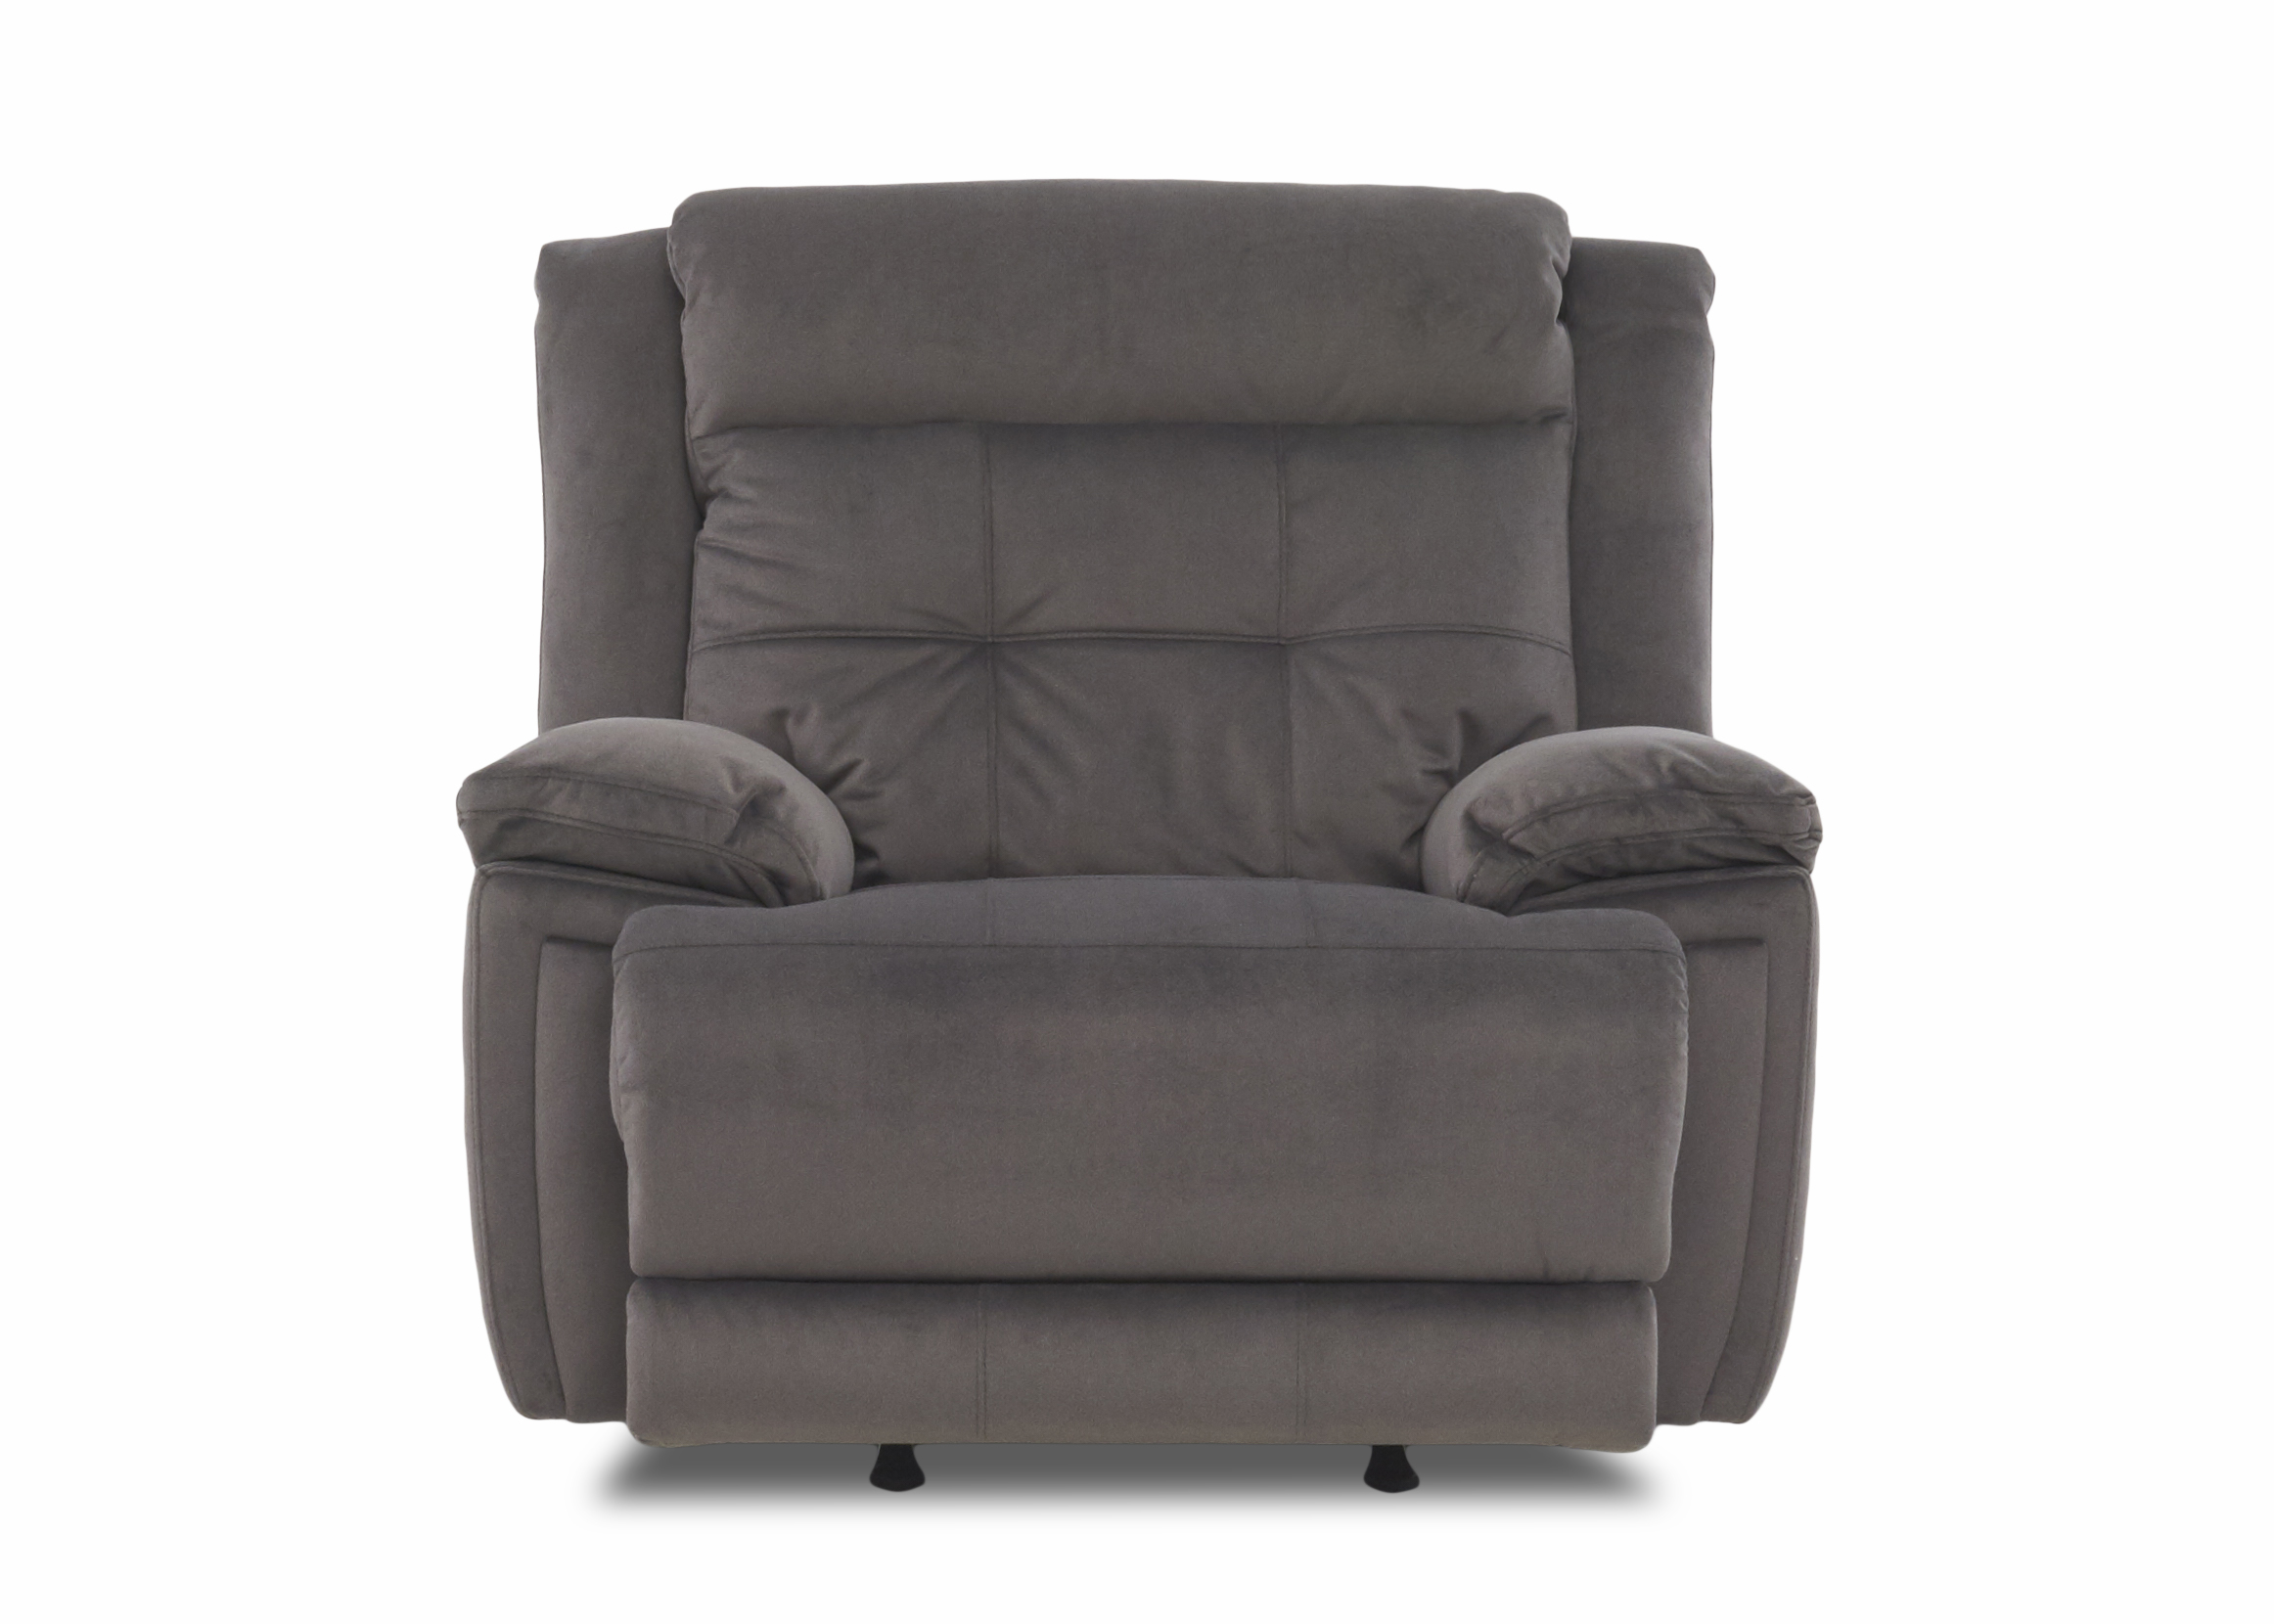 Superb Mccall Power Recliner With Power Headrest And Sofas And Theyellowbook Wood Chair Design Ideas Theyellowbookinfo